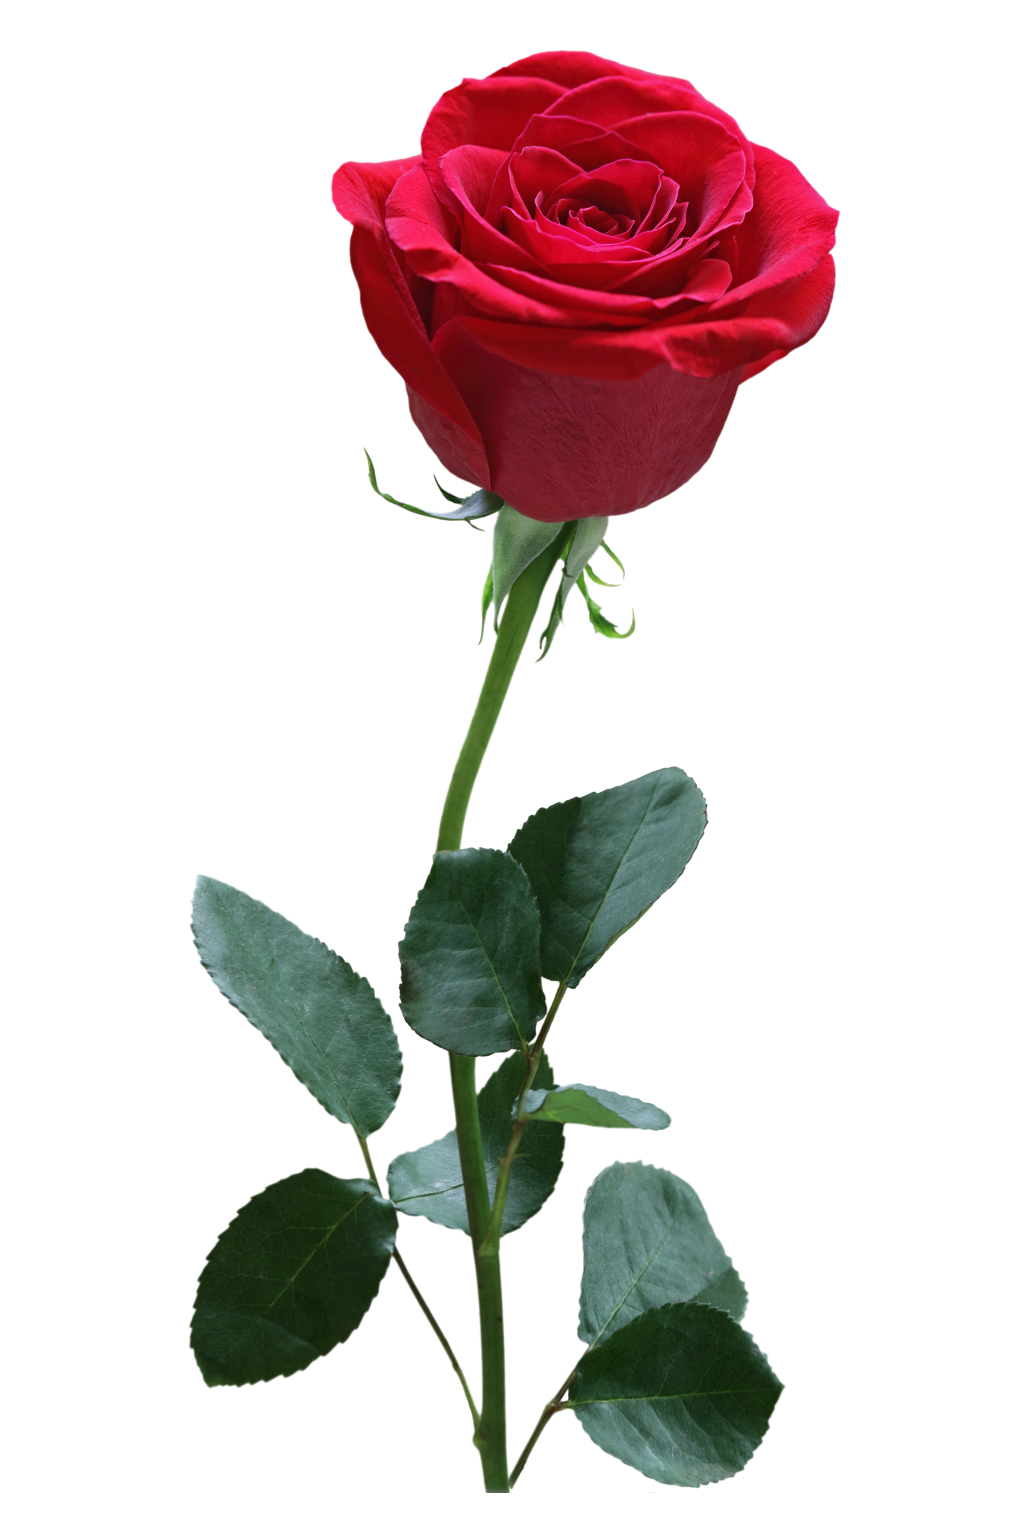 Online flower delivery withlovenregards roses to know their importance and association with various occasions so that you always give the correct rose to your loved ones on their special days izmirmasajfo